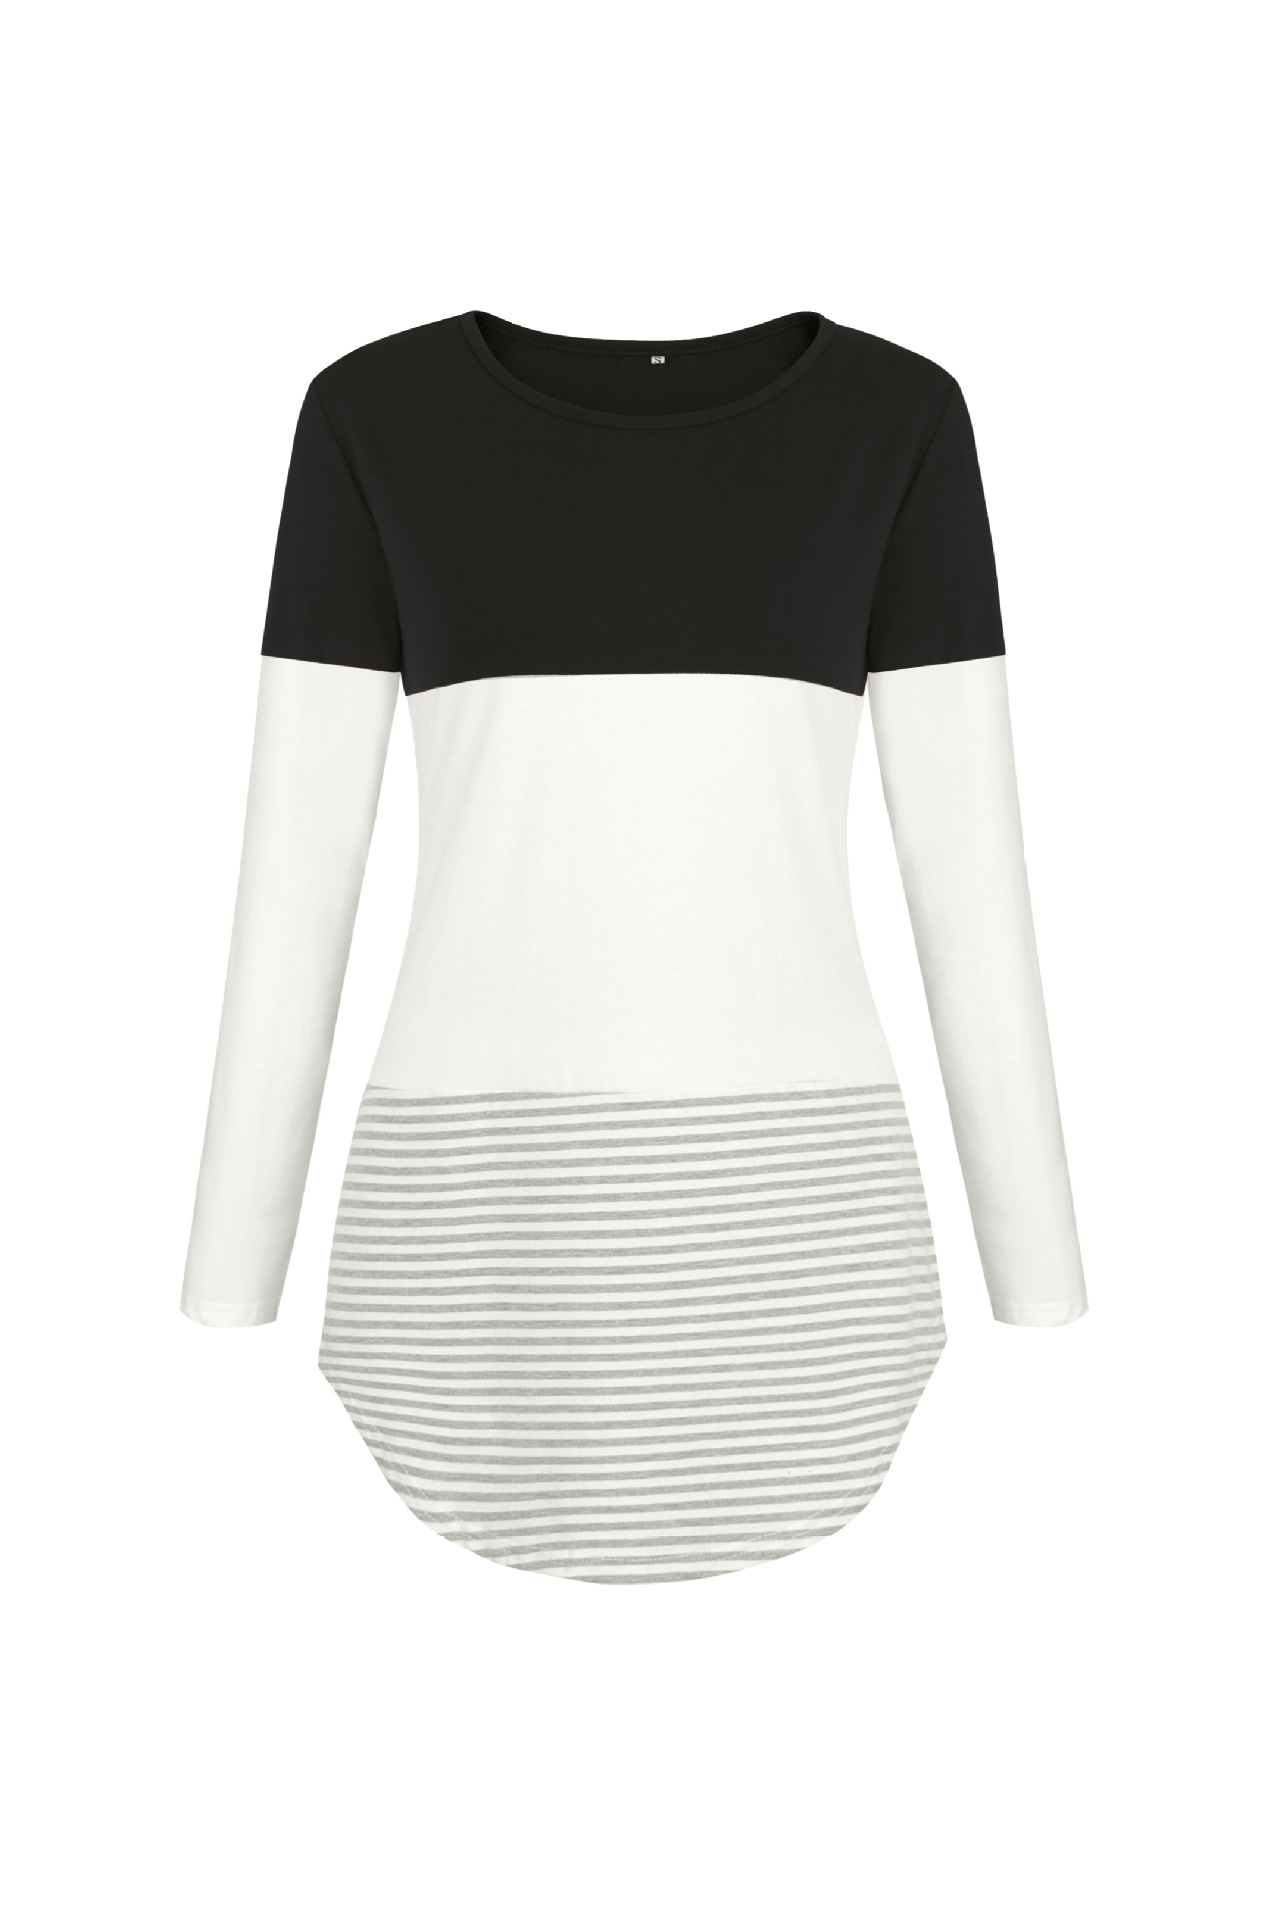 Women Long Sleeve Cotton T Shirt O Neck Spring Summer Striped Patchwork Casual Tee Tops black